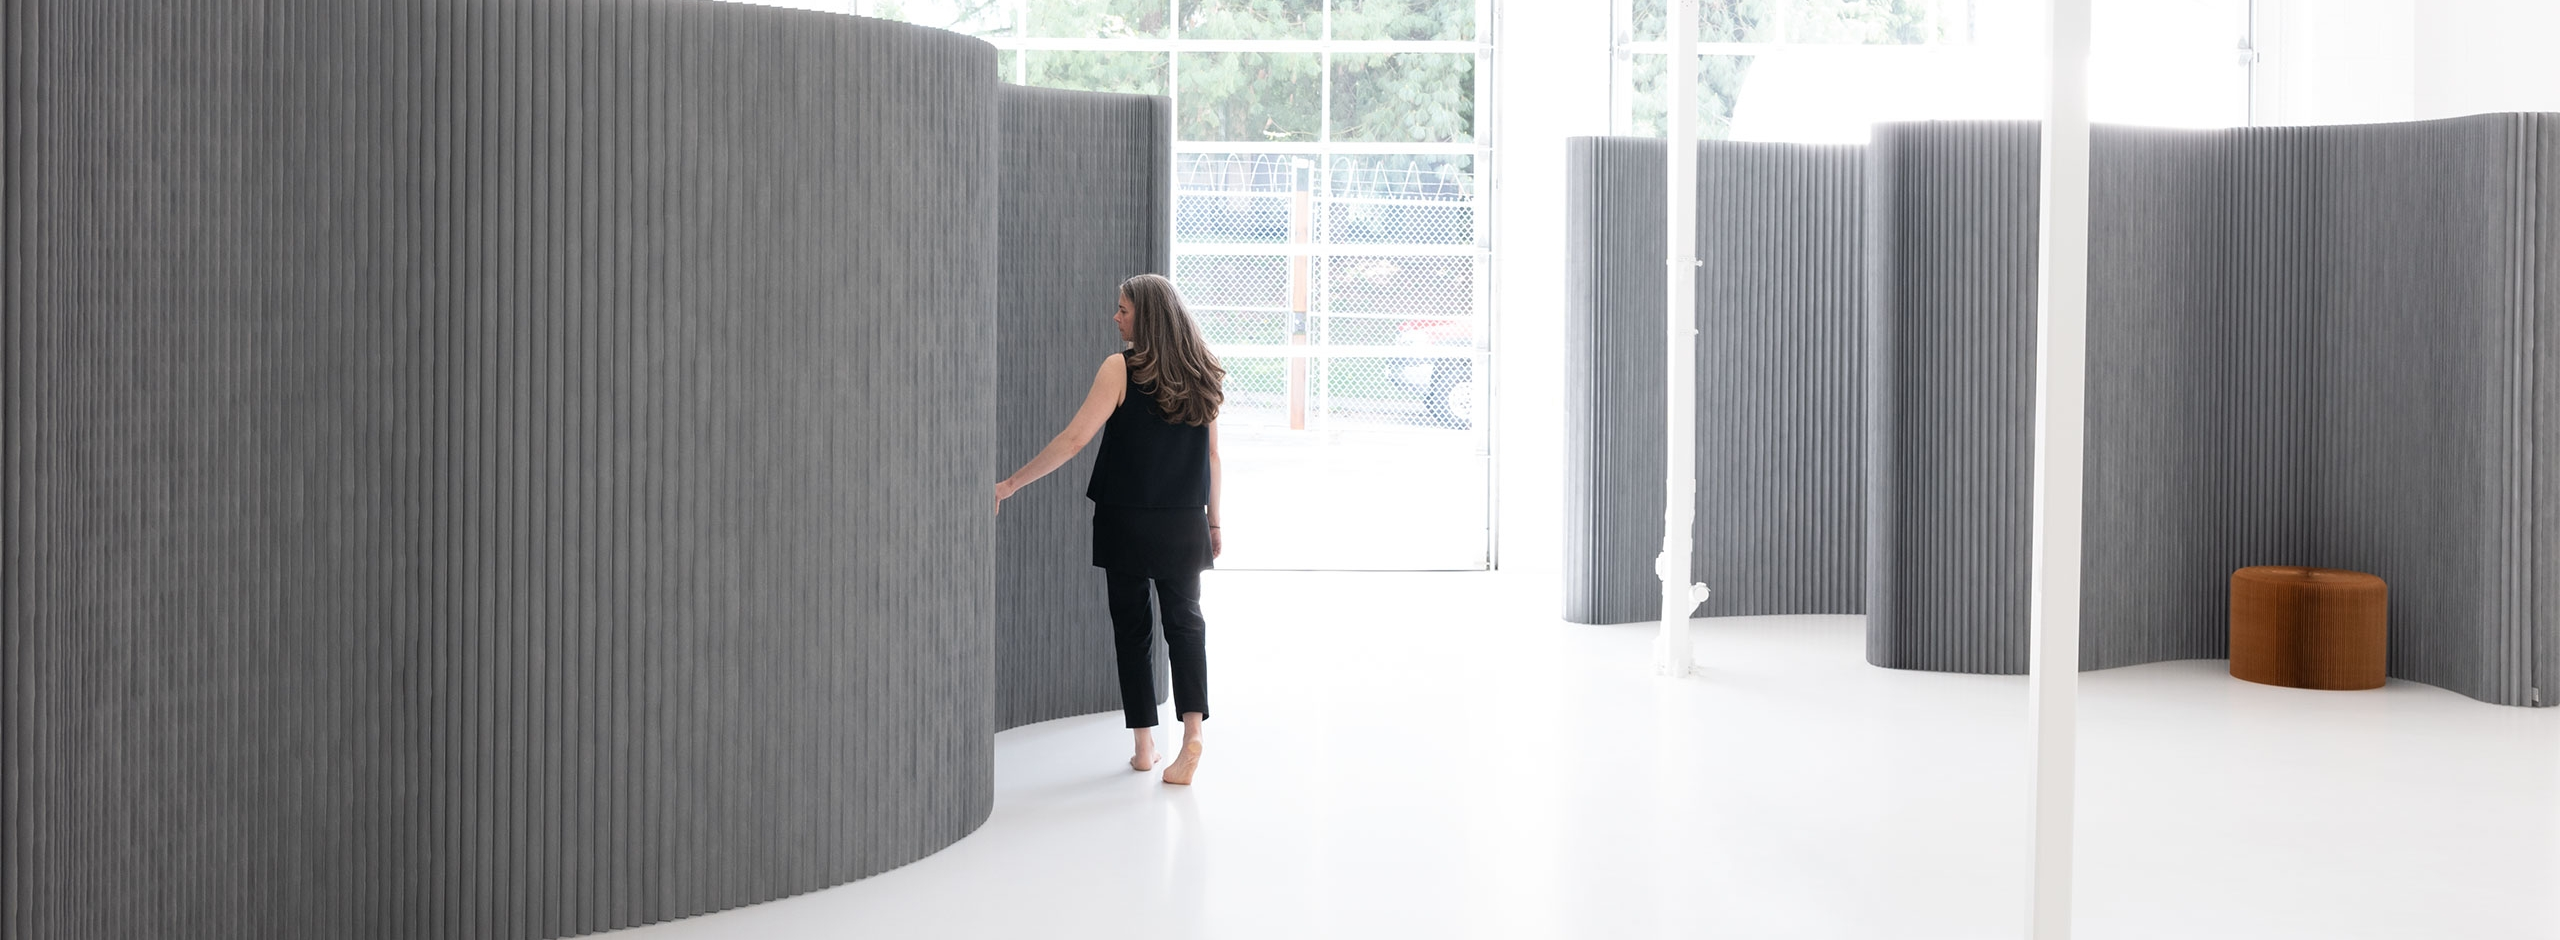 This folding wall can be arranged into any shape as an acoustic wall, event backdrop or room divider.